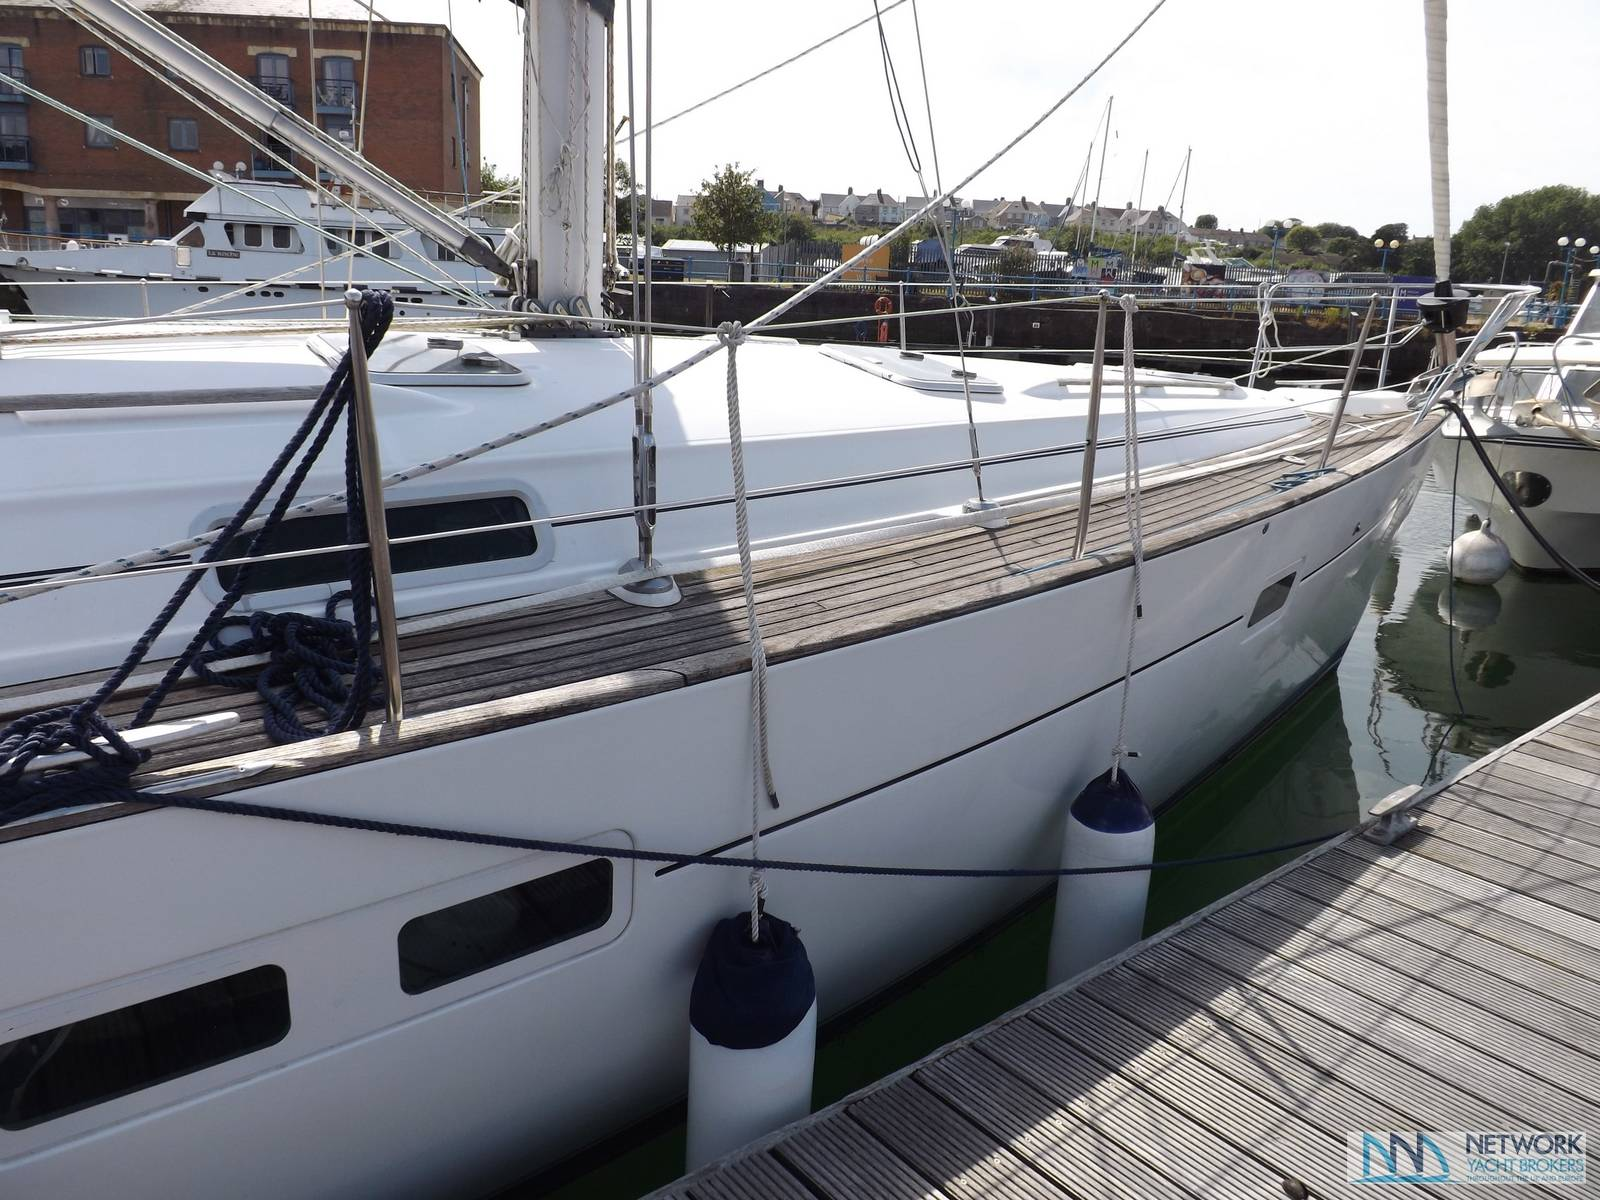 Beneteau Oceanis Clipper 411 - Network Yacht Brokers Milford Haven Pembrokeshire 01646 278270 Yachts.co Milford Haven Pembrokeshire 01646 278270 SA73 3AX